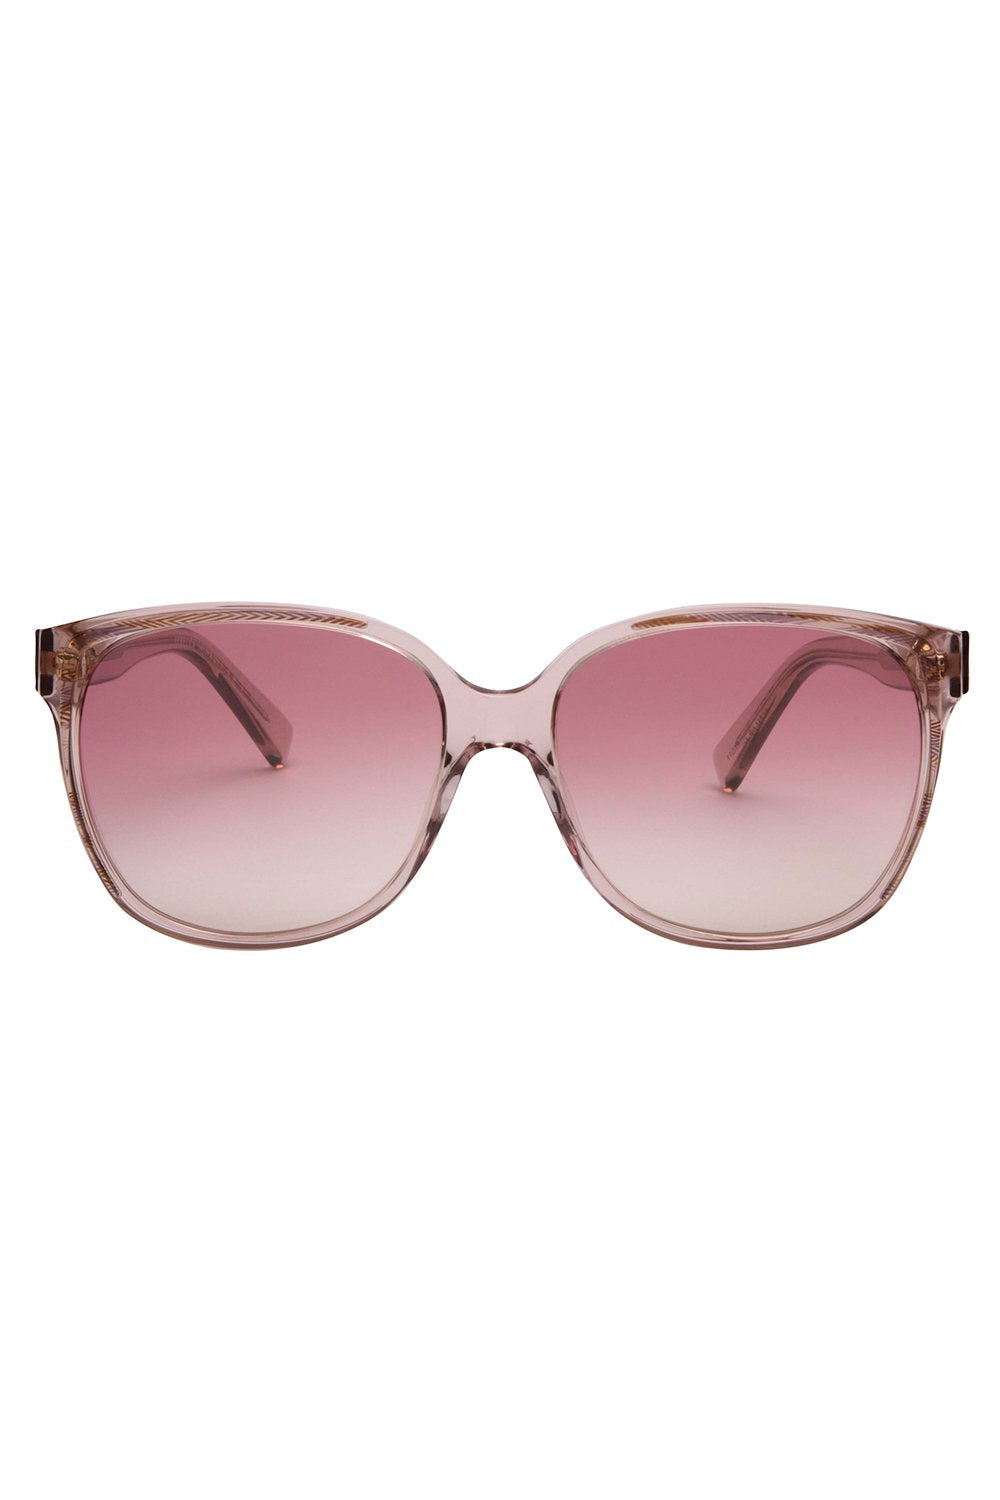 Rebecca Minkoff - Jane 1 Pink Sunglasses / Pink Flash Silver Lenses